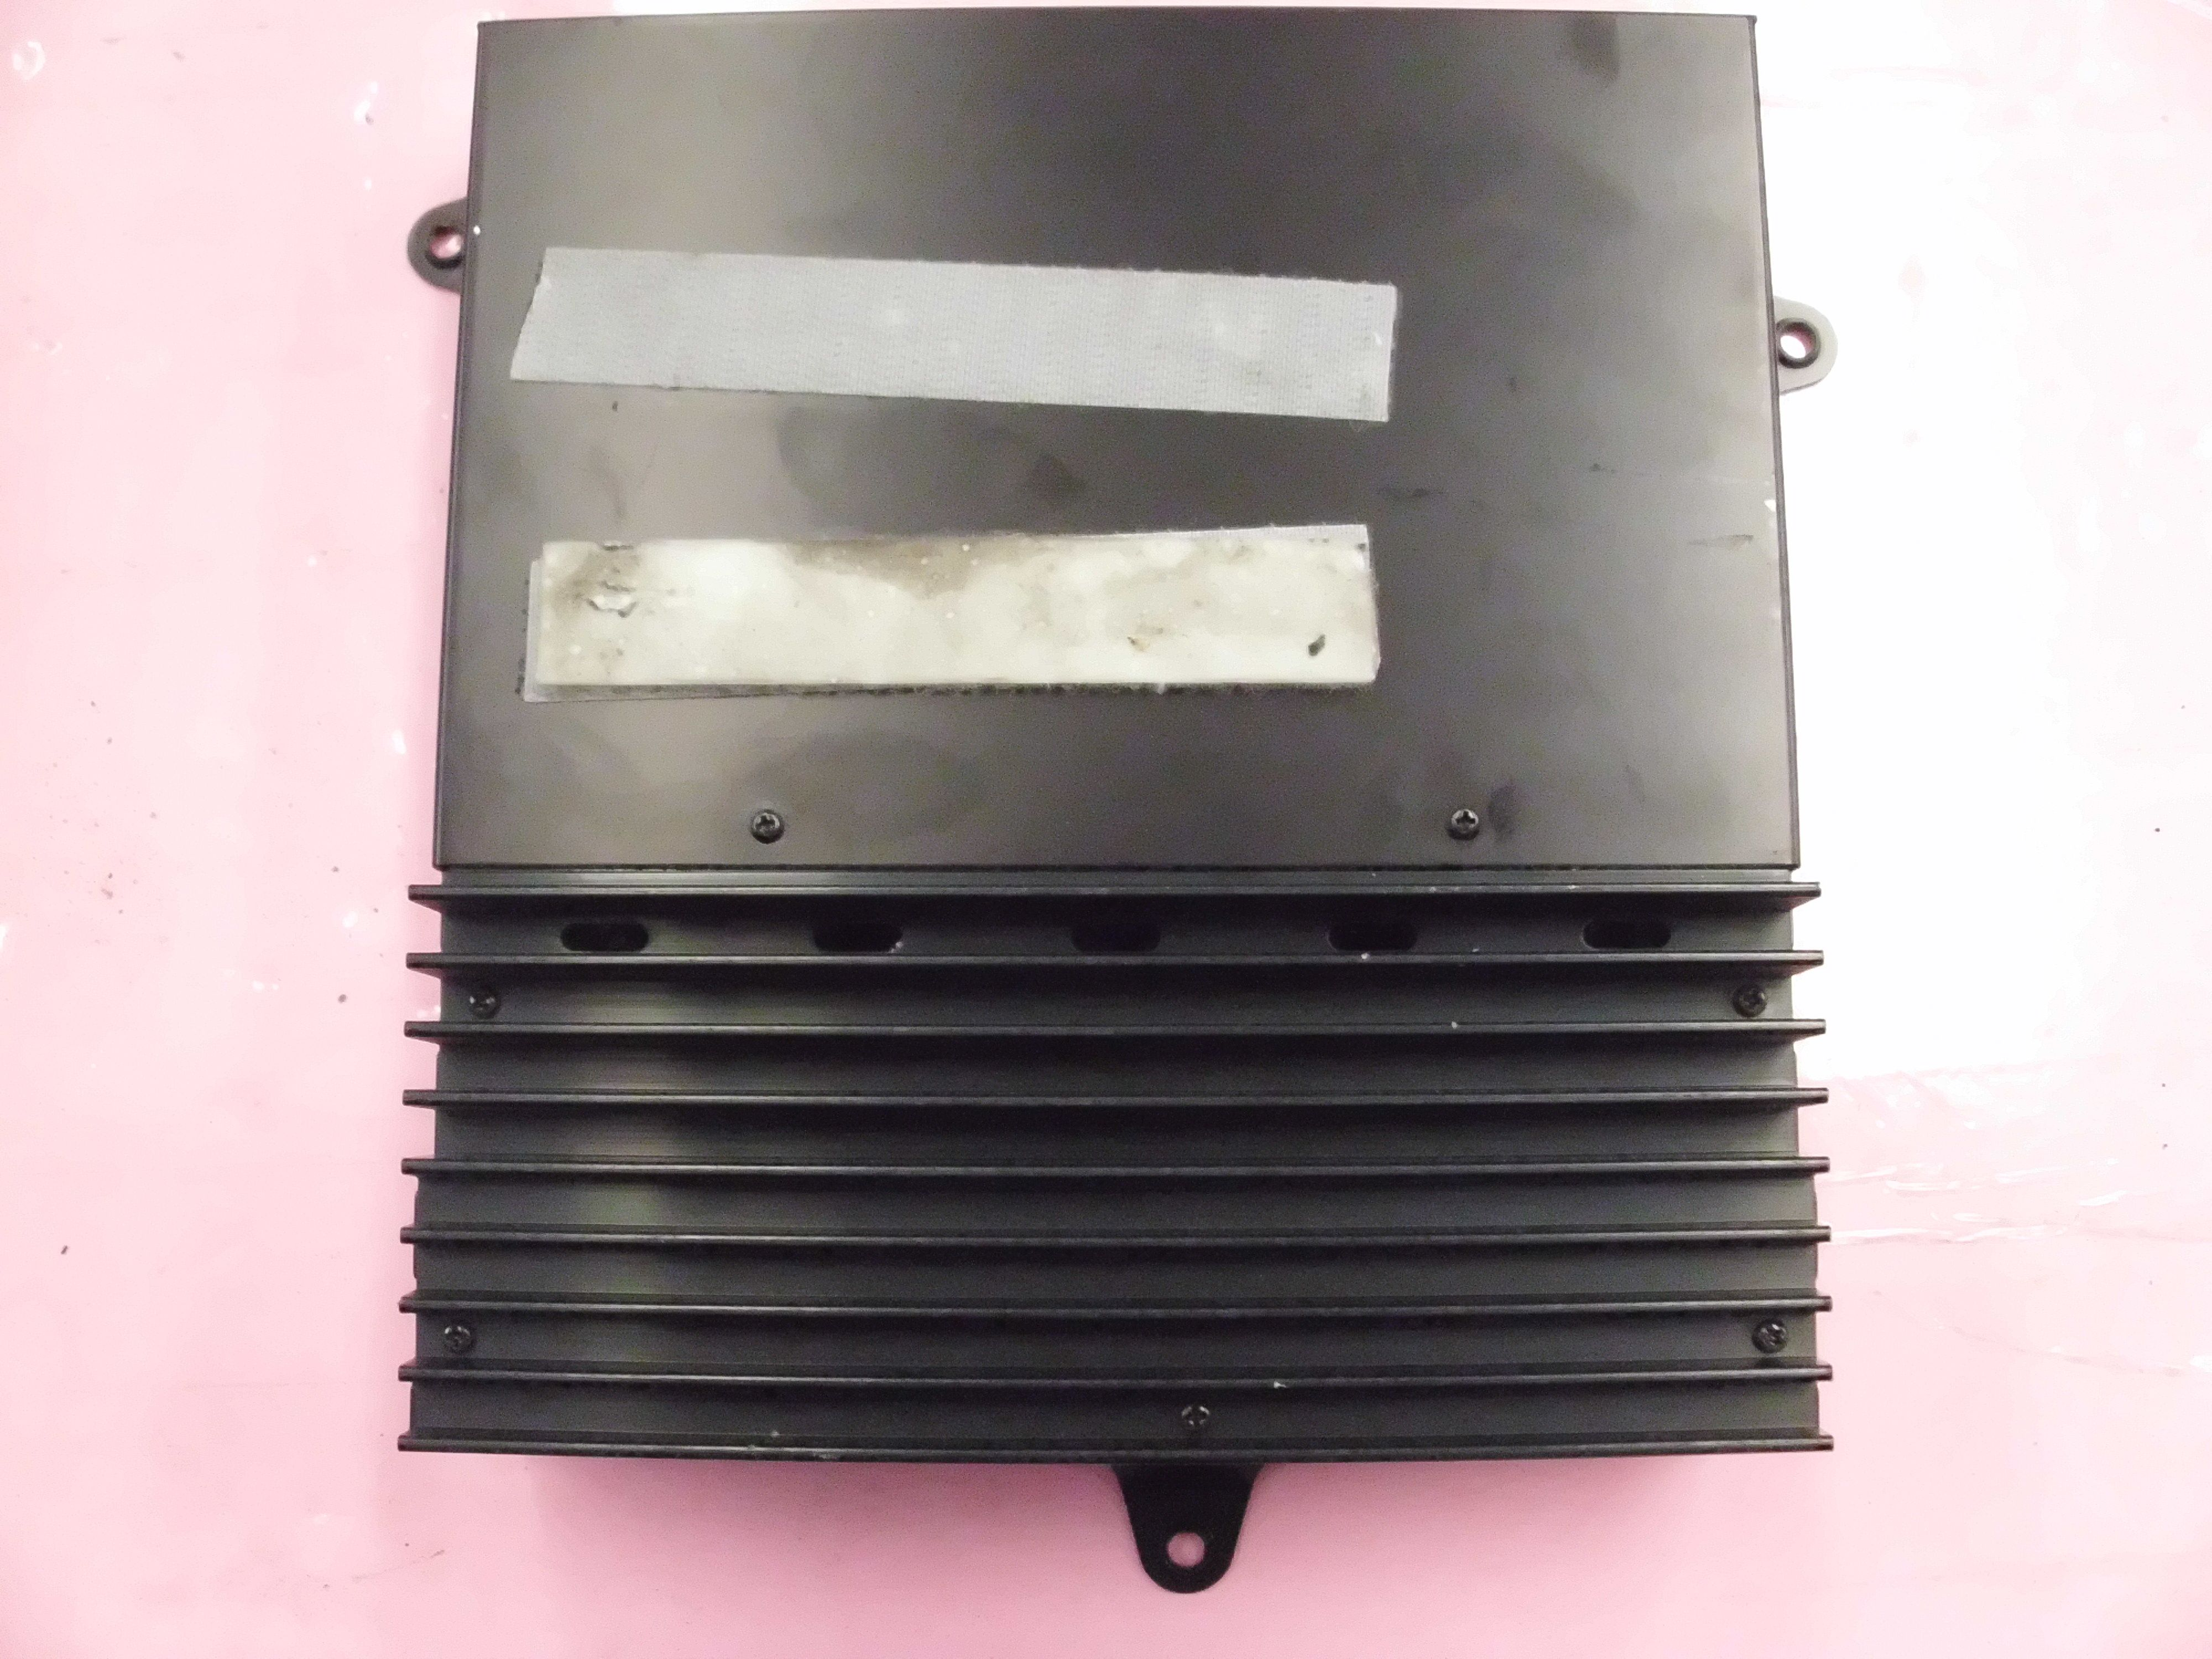 This amplifier amp is for 1997 2003 bmw 525i bmw 528i bmw 530i